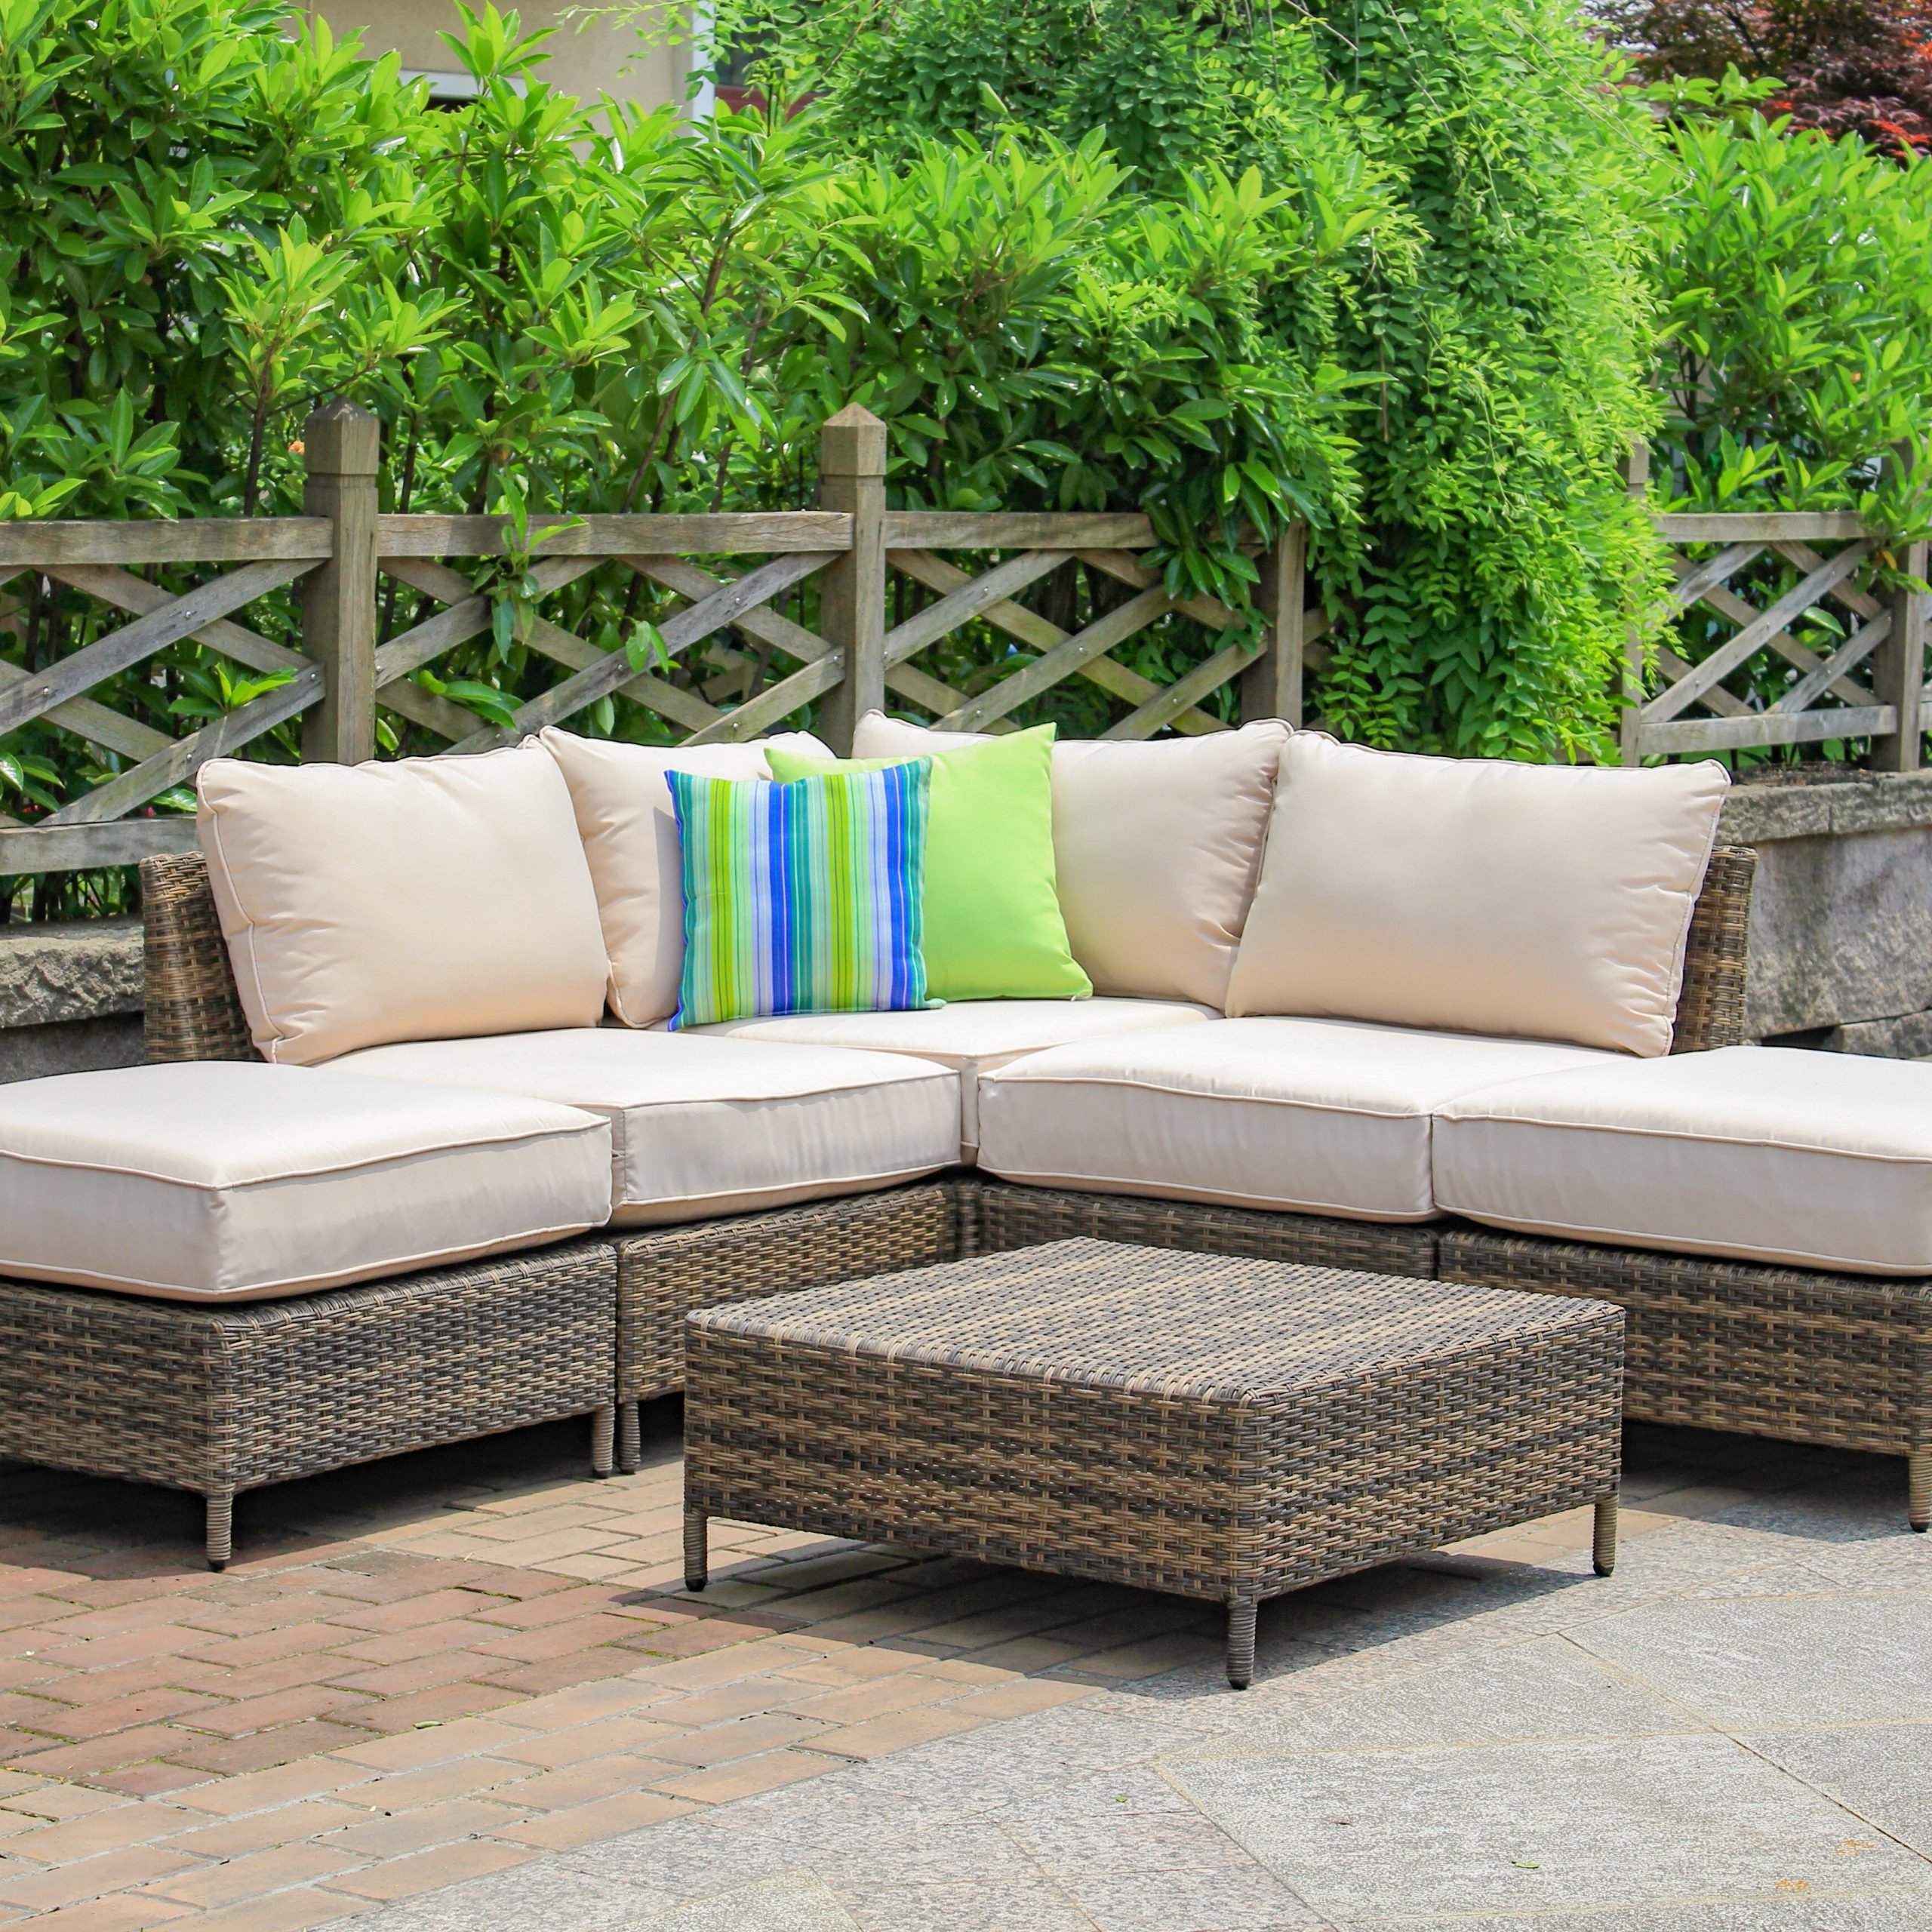 Best And Newest Sophie 6 Piece Sectional Seating Group With Cushions With Letona Patio Sectionals With Cushions (Gallery 20 of 25)